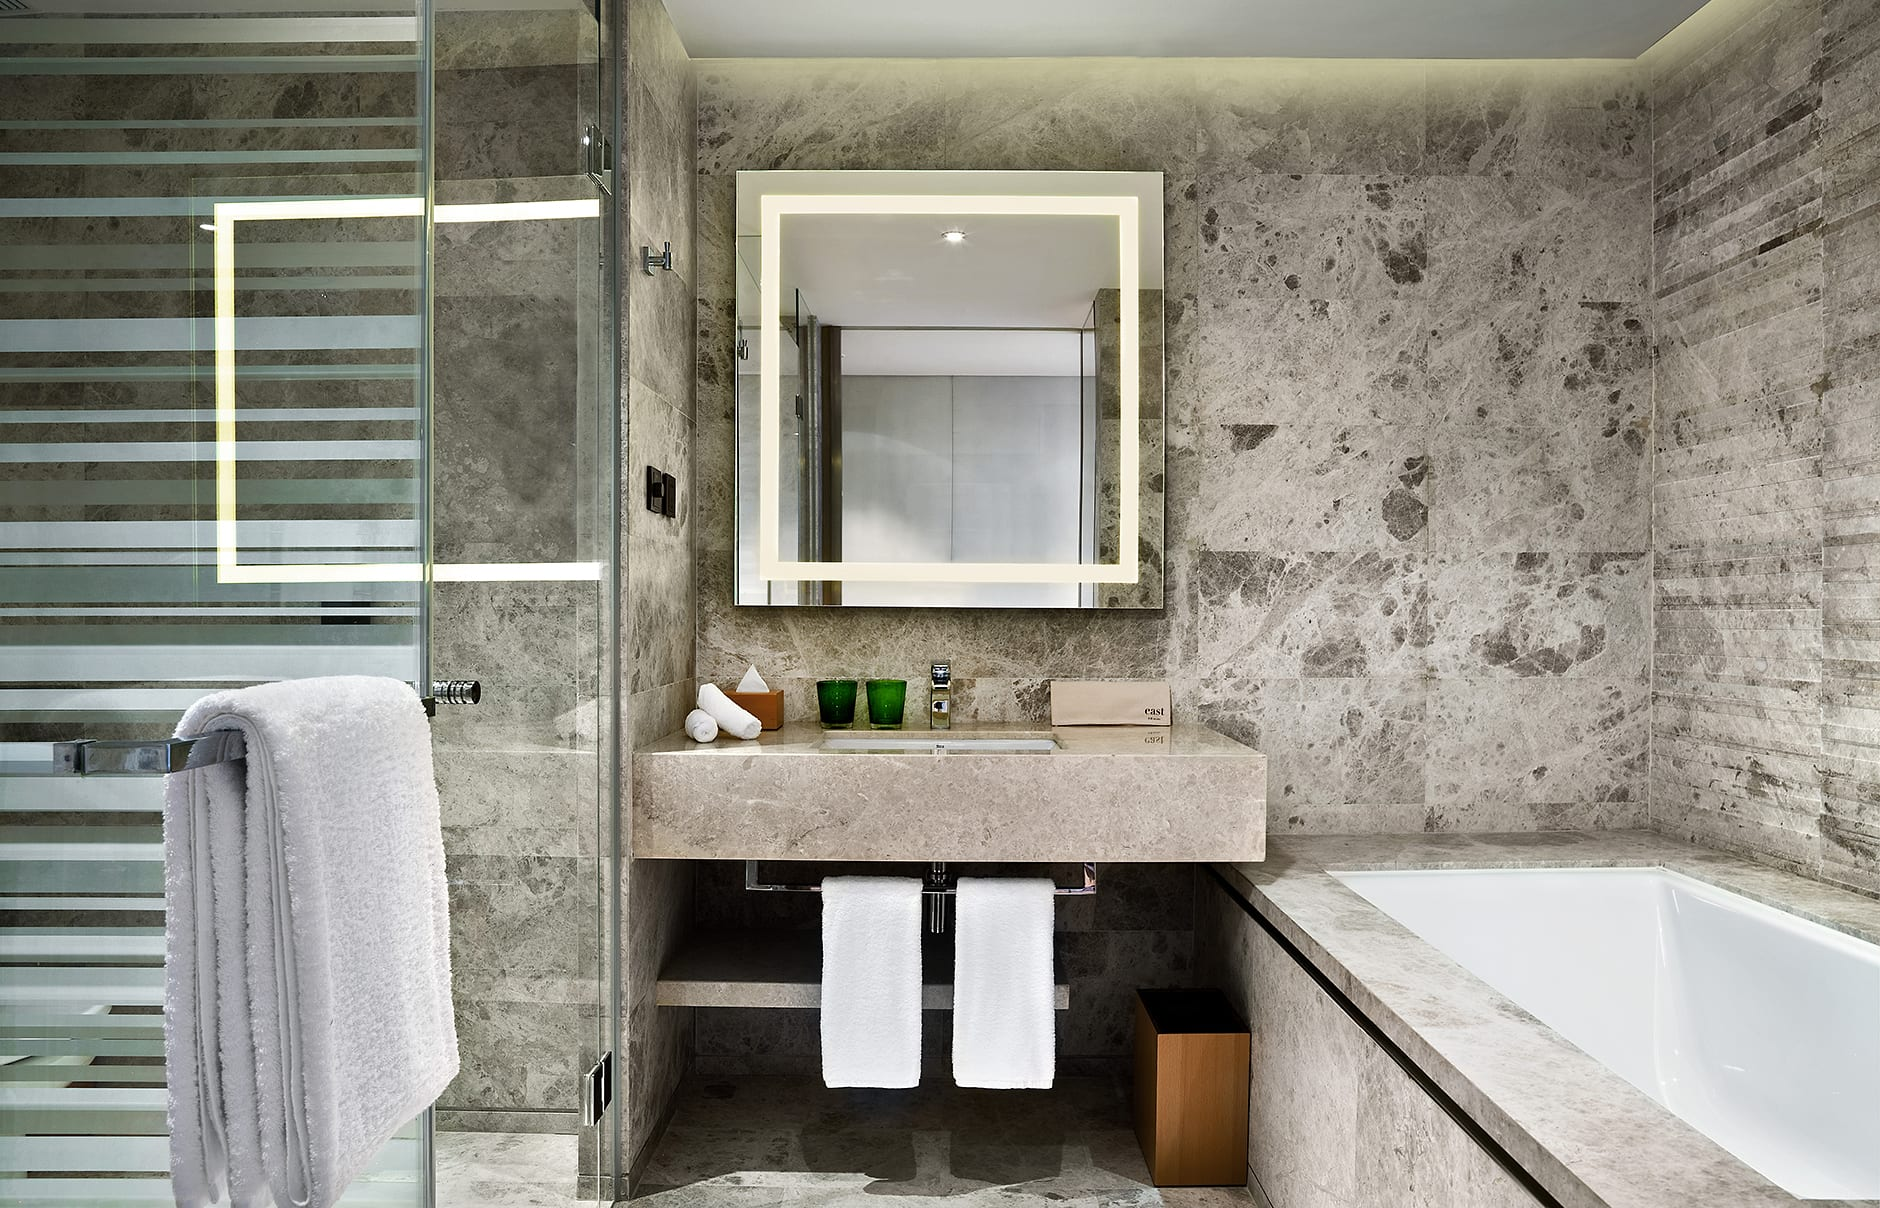 Bathroom. EAST Beijing, China. © Swire Hotels